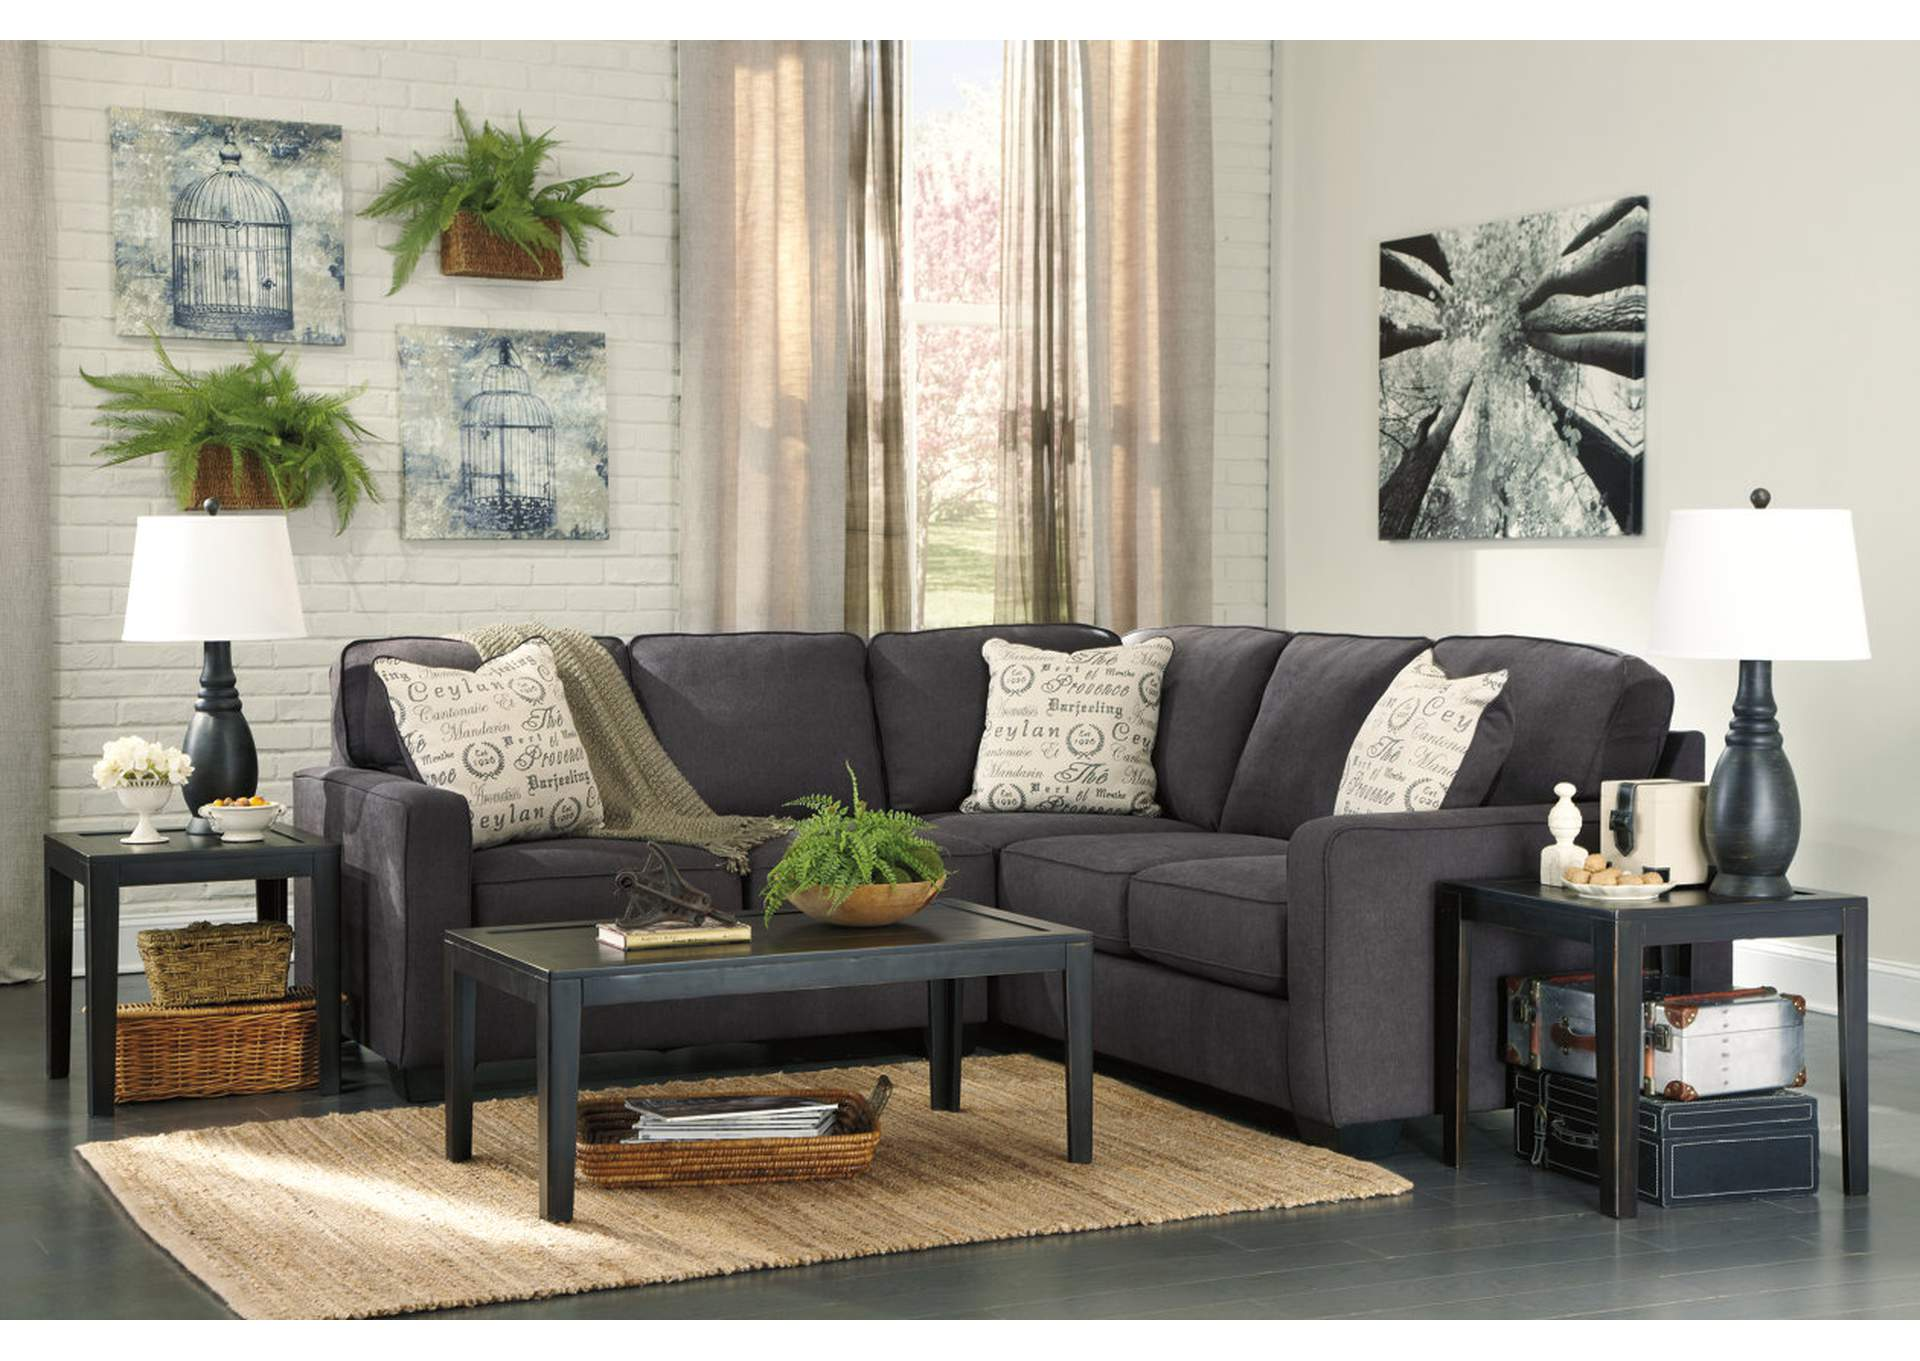 Alenya Charcoal Left Facing Sectional,Signature Design By Ashley